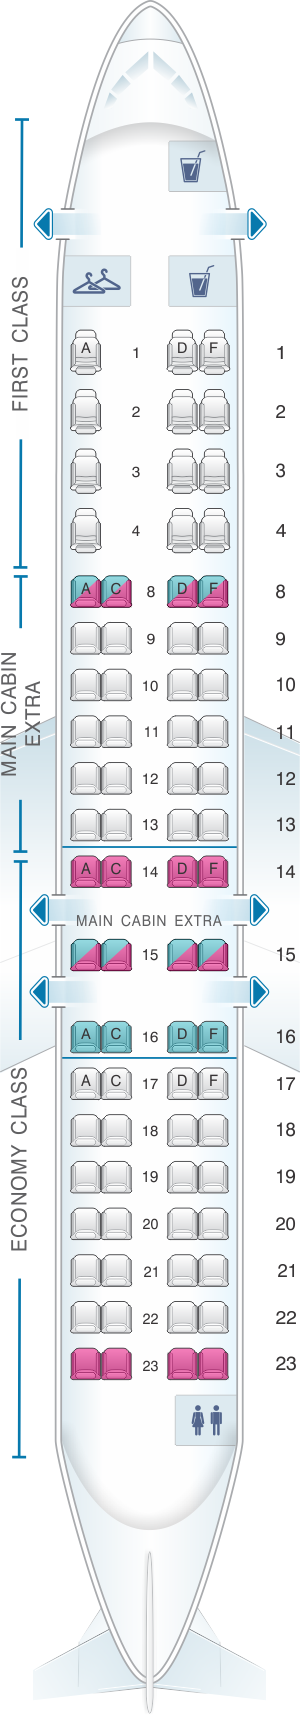 Seat map for American Airlines CRJ 900 V1